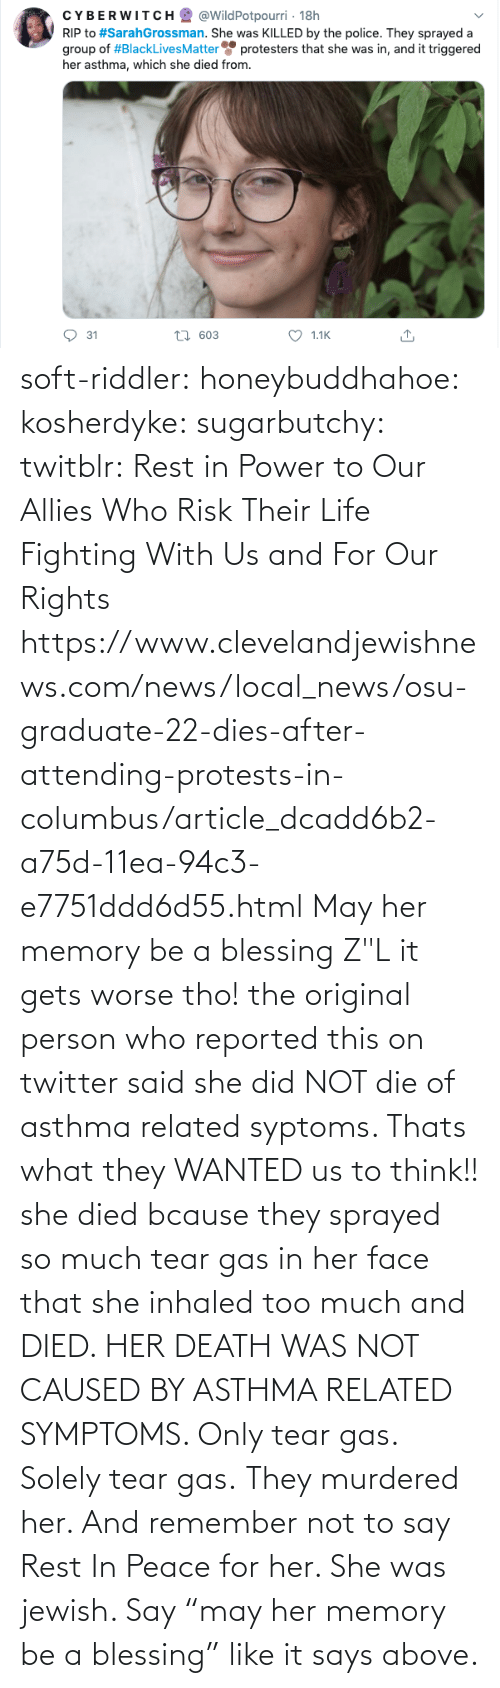 "wanted: soft-riddler:  honeybuddhahoe:  kosherdyke:  sugarbutchy:  twitblr: Rest in Power to Our Allies Who Risk Their Life Fighting With Us and For Our Rights https://www.clevelandjewishnews.com/news/local_news/osu-graduate-22-dies-after-attending-protests-in-columbus/article_dcadd6b2-a75d-11ea-94c3-e7751ddd6d55.html    May her memory be a blessing Z""L  it gets worse tho! the original person who reported this on twitter said she did NOT die of asthma related syptoms. Thats what they WANTED us to think!! she died bcause they sprayed so much tear gas in her face that she inhaled too much and DIED. HER DEATH WAS NOT CAUSED BY ASTHMA RELATED SYMPTOMS. Only tear gas. Solely tear gas. They murdered her.     And remember not to say Rest In Peace for her. She was jewish. Say ""may her memory be a blessing"" like it says above."